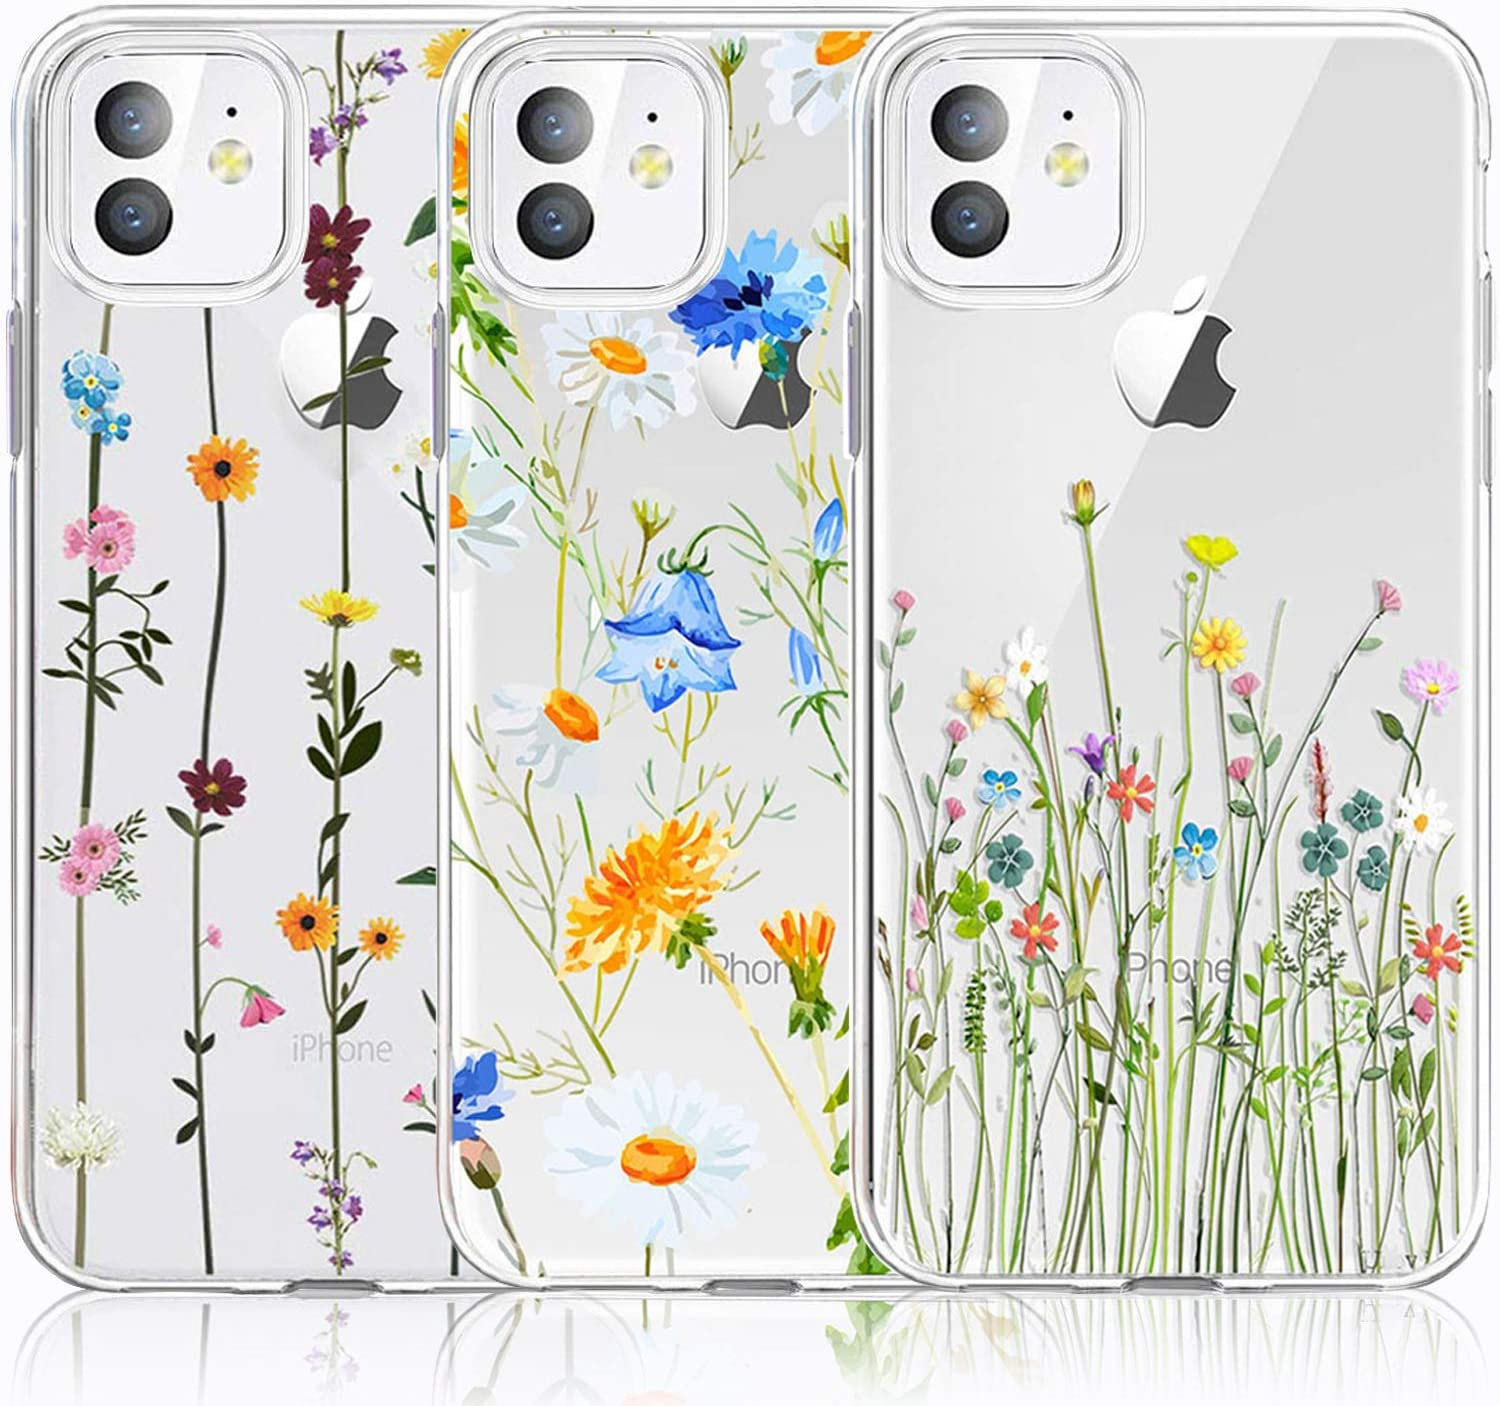 CarterLily iPhone 11 Case, iPhone 11 Case with Flowers, [3-Pack] Watercolor Flowers Floral Pattern Soft Clear Flexible TPU Back Case for Apple iPhone 11 6.1 inch (Cute Wildflower)